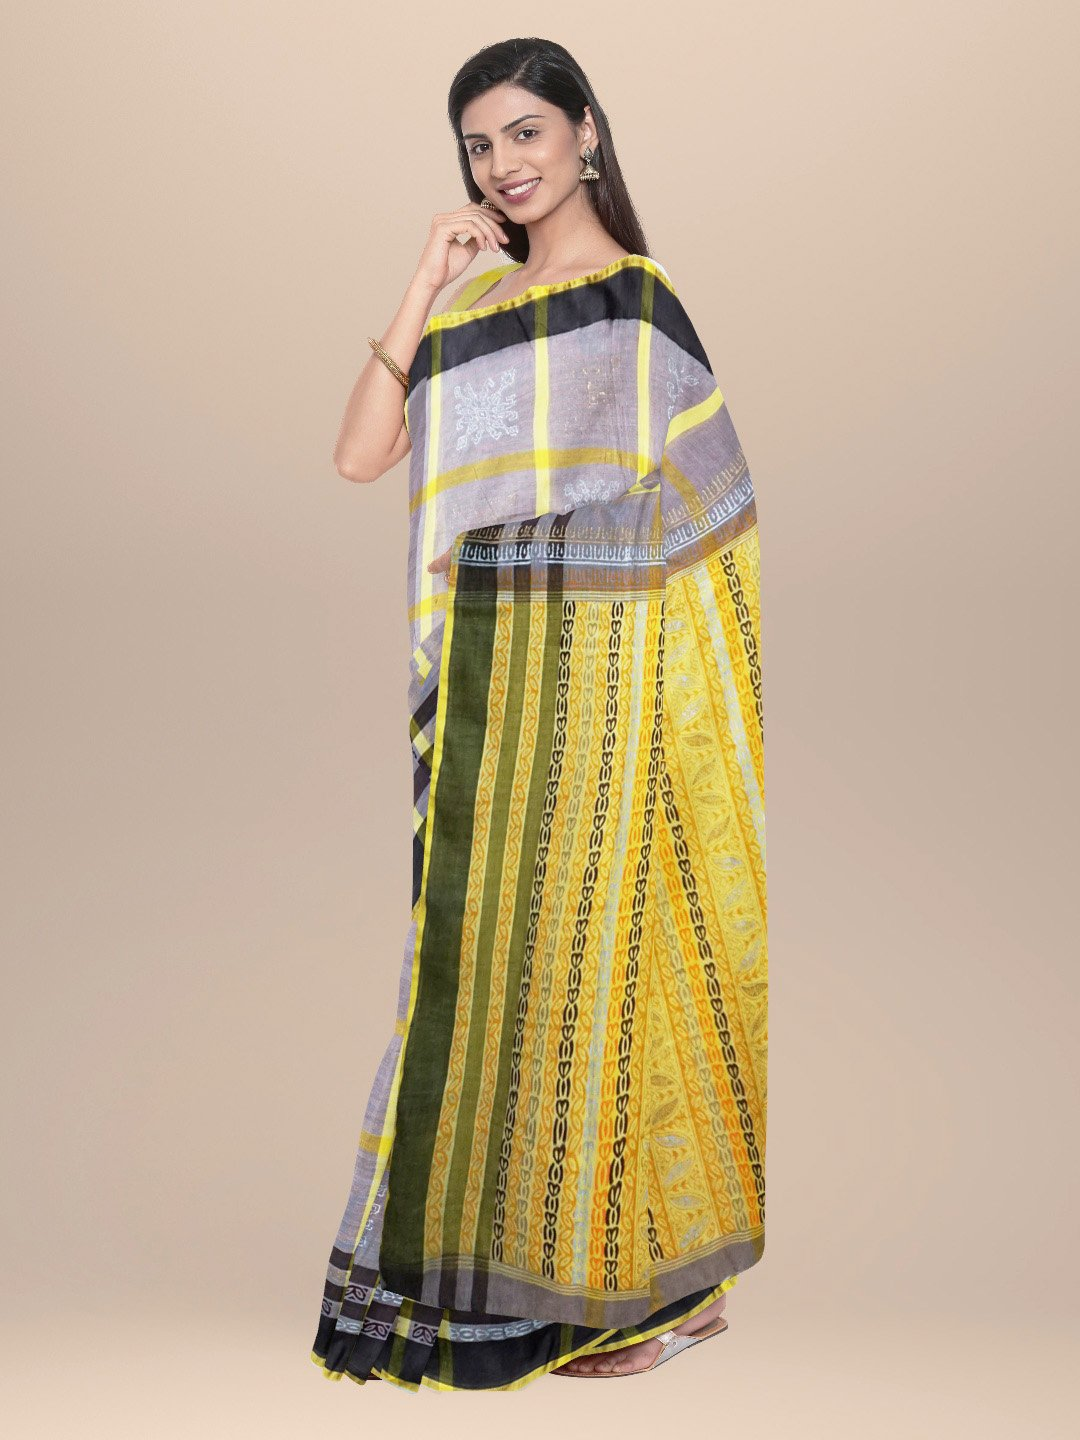 Cotton Handwoven & Hand Block Printed Saree Brown